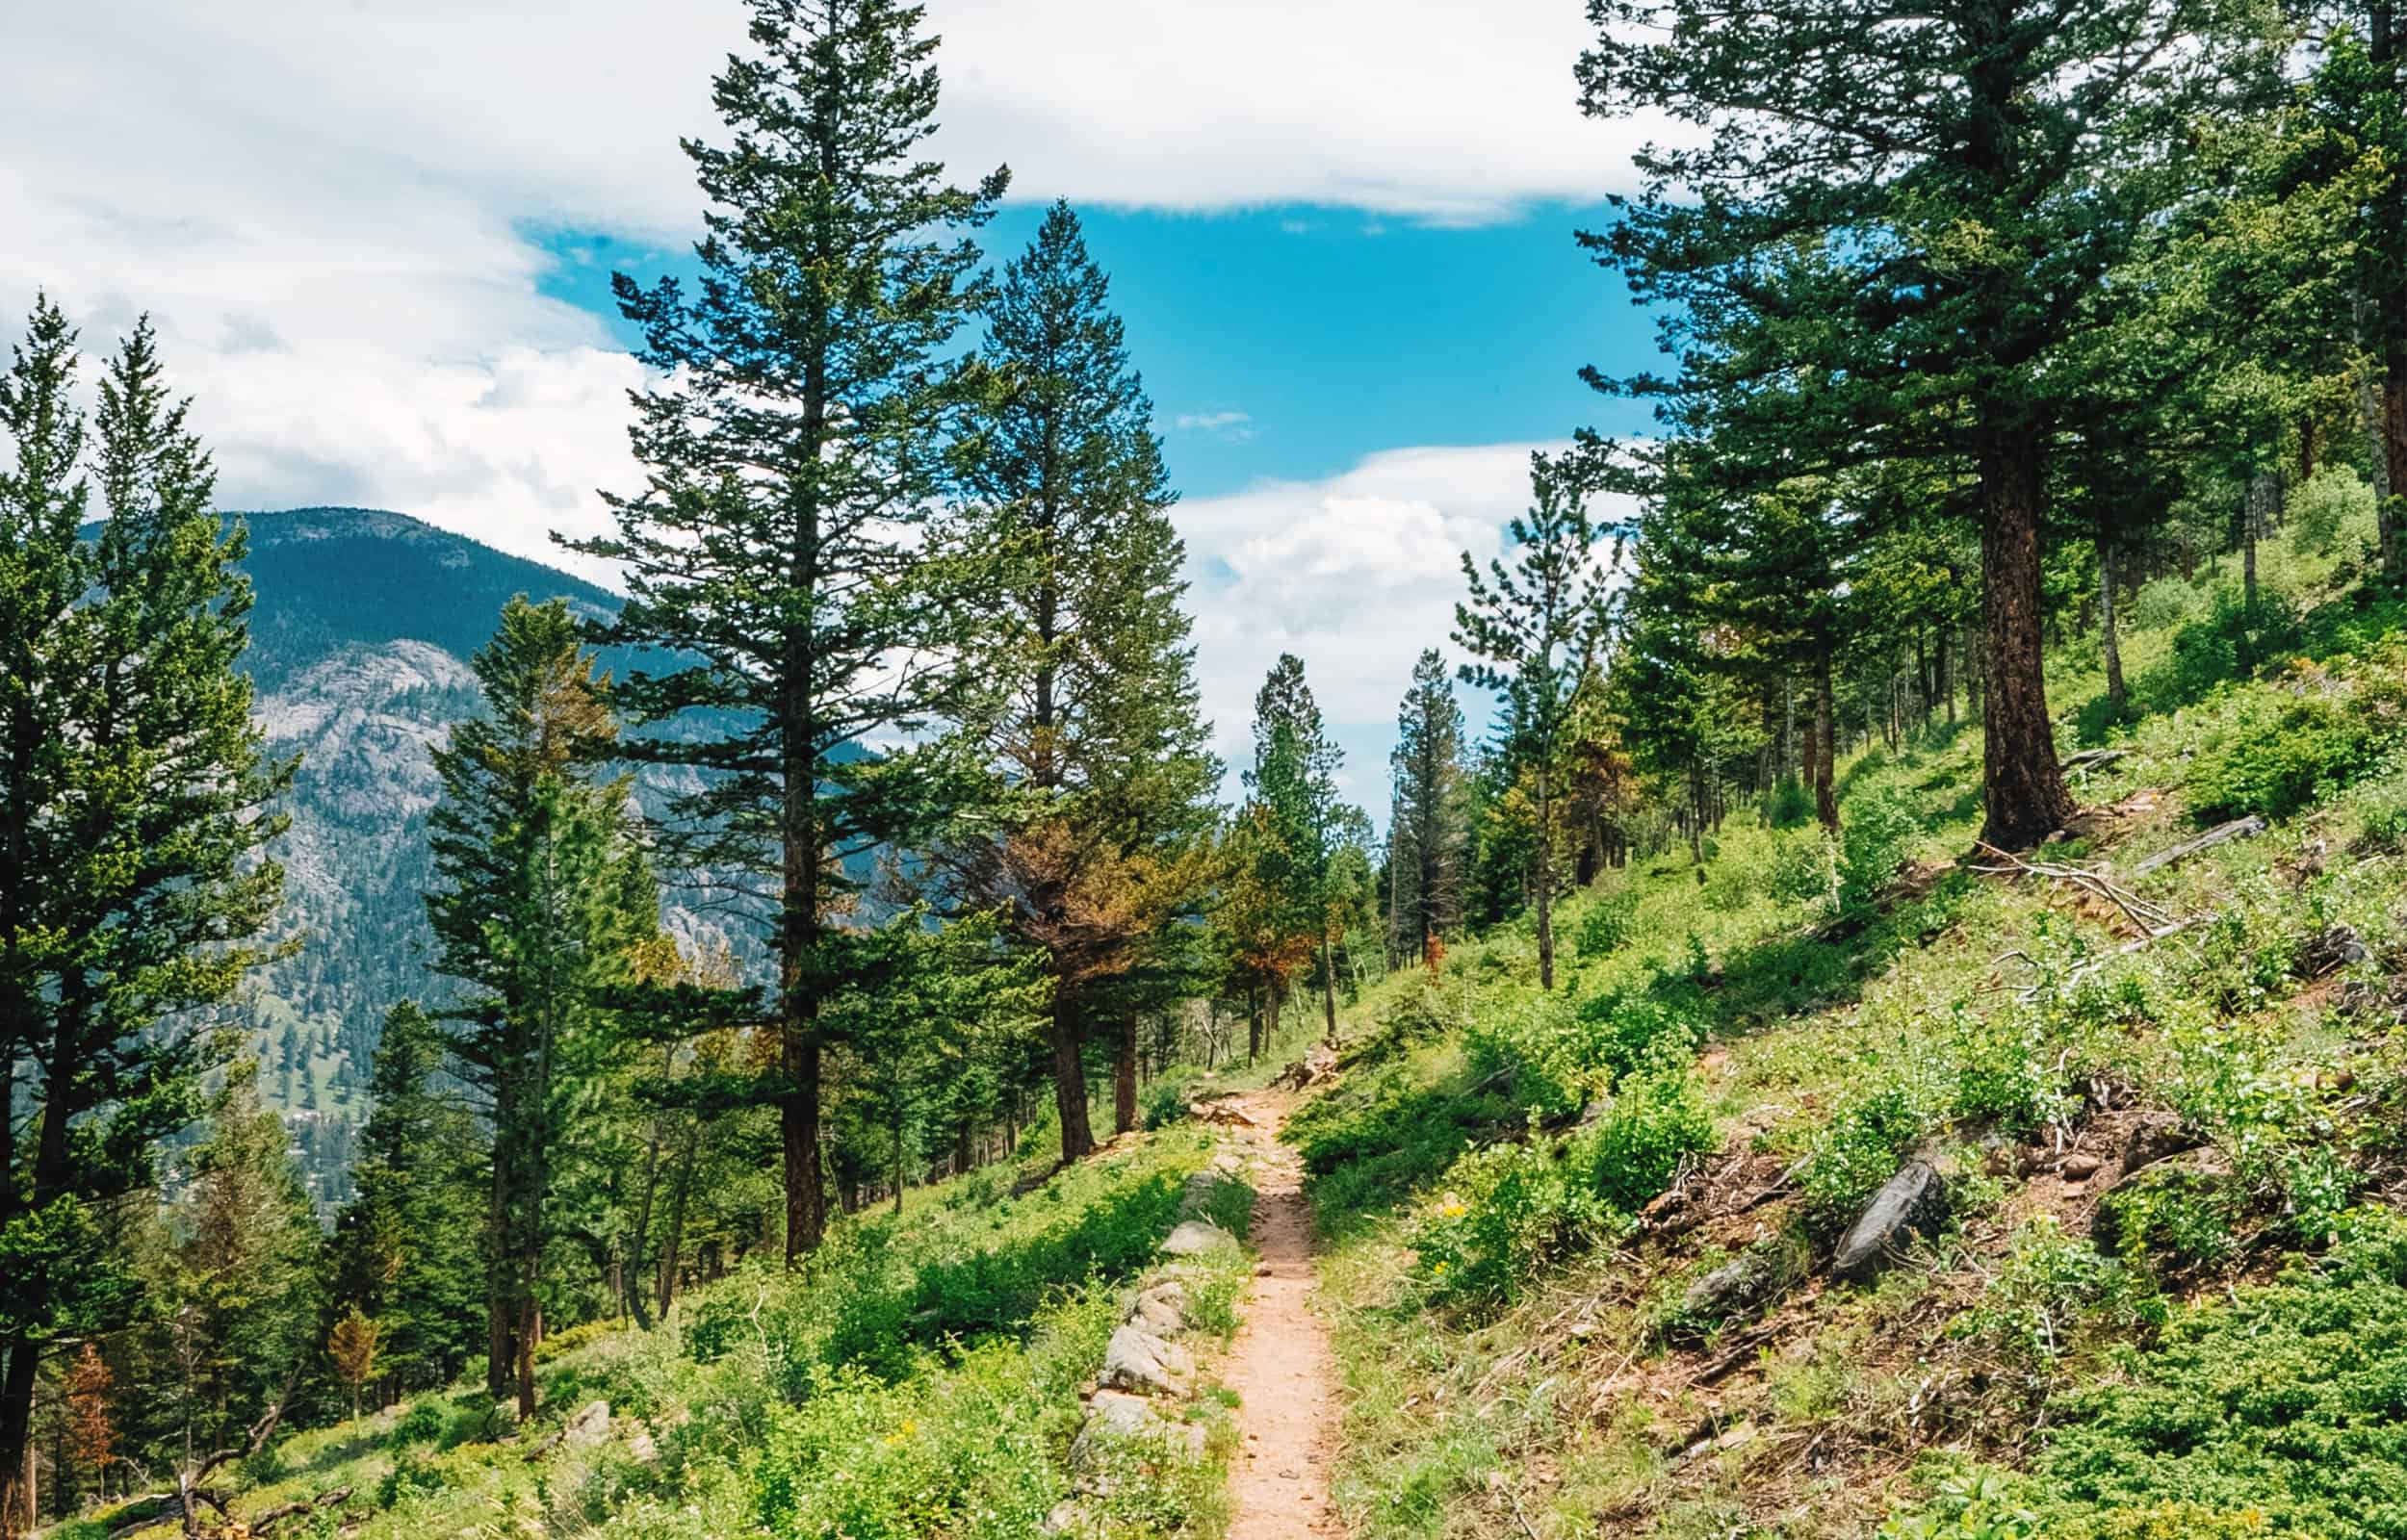 trail looking towards alpine trees and mountain